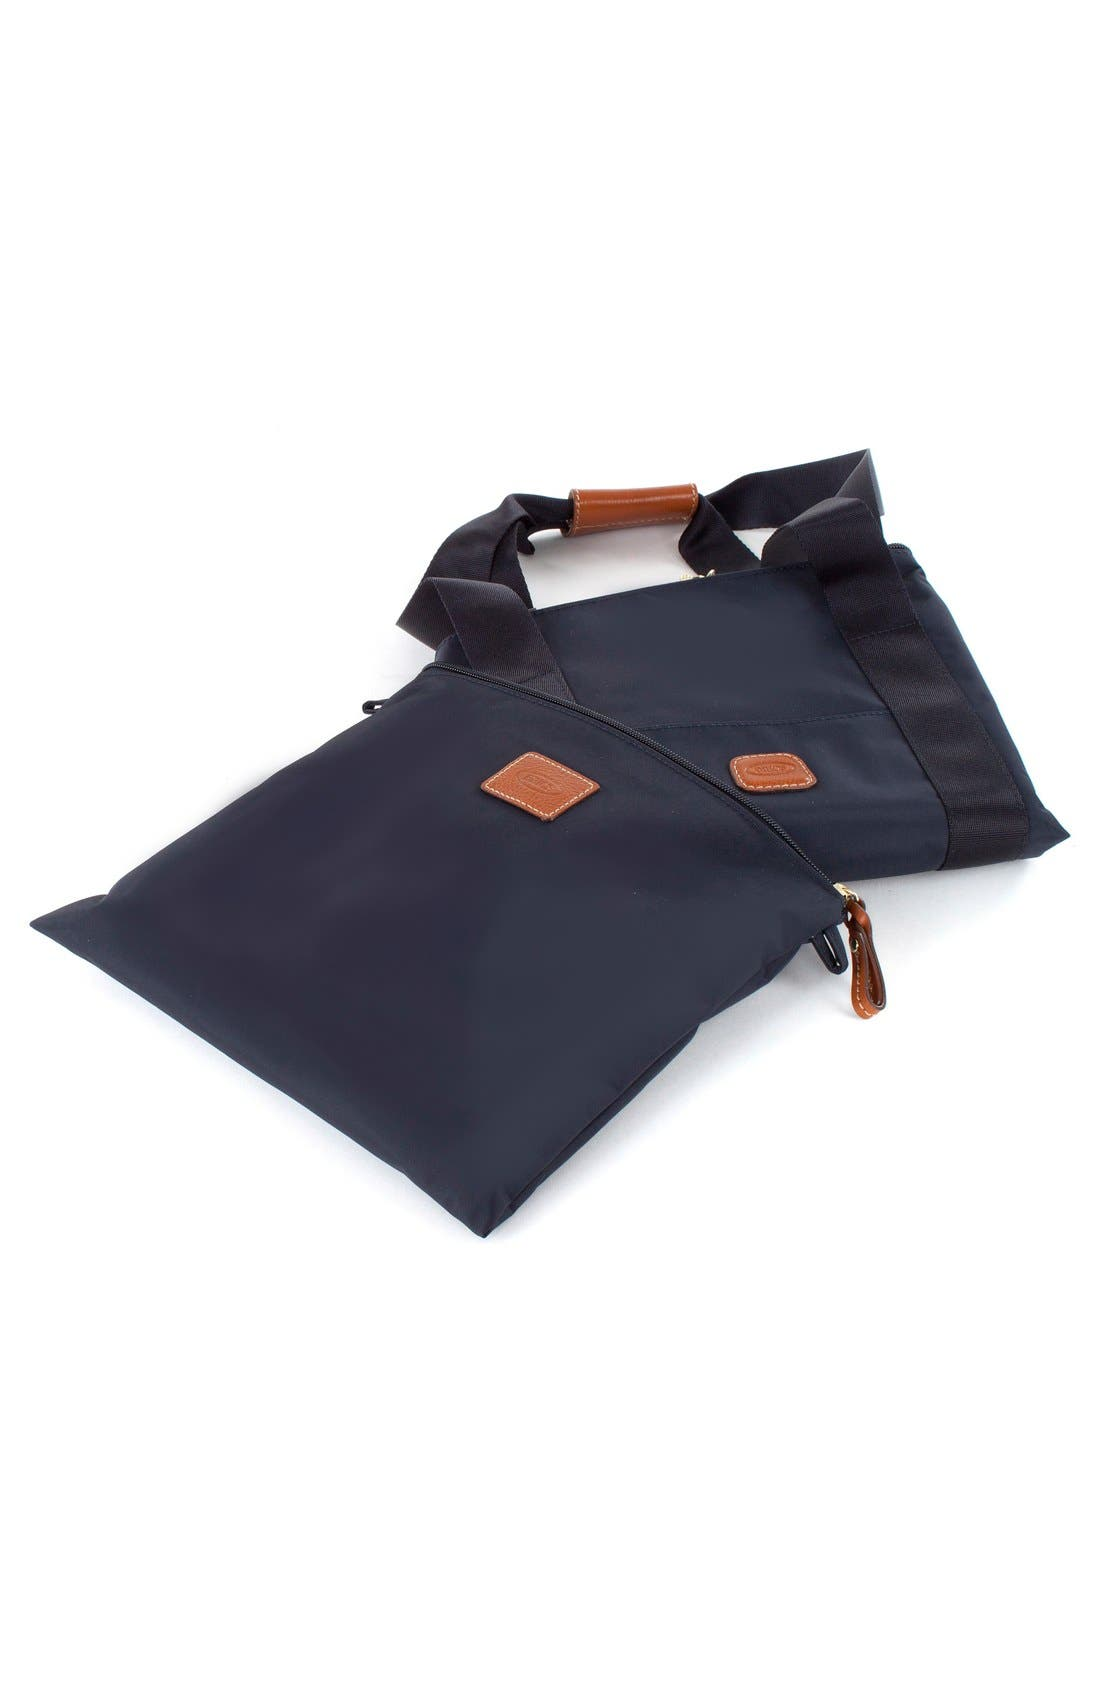 'X-Bag' Folding Duffel Bag,                             Alternate thumbnail 6, color,                             Navy